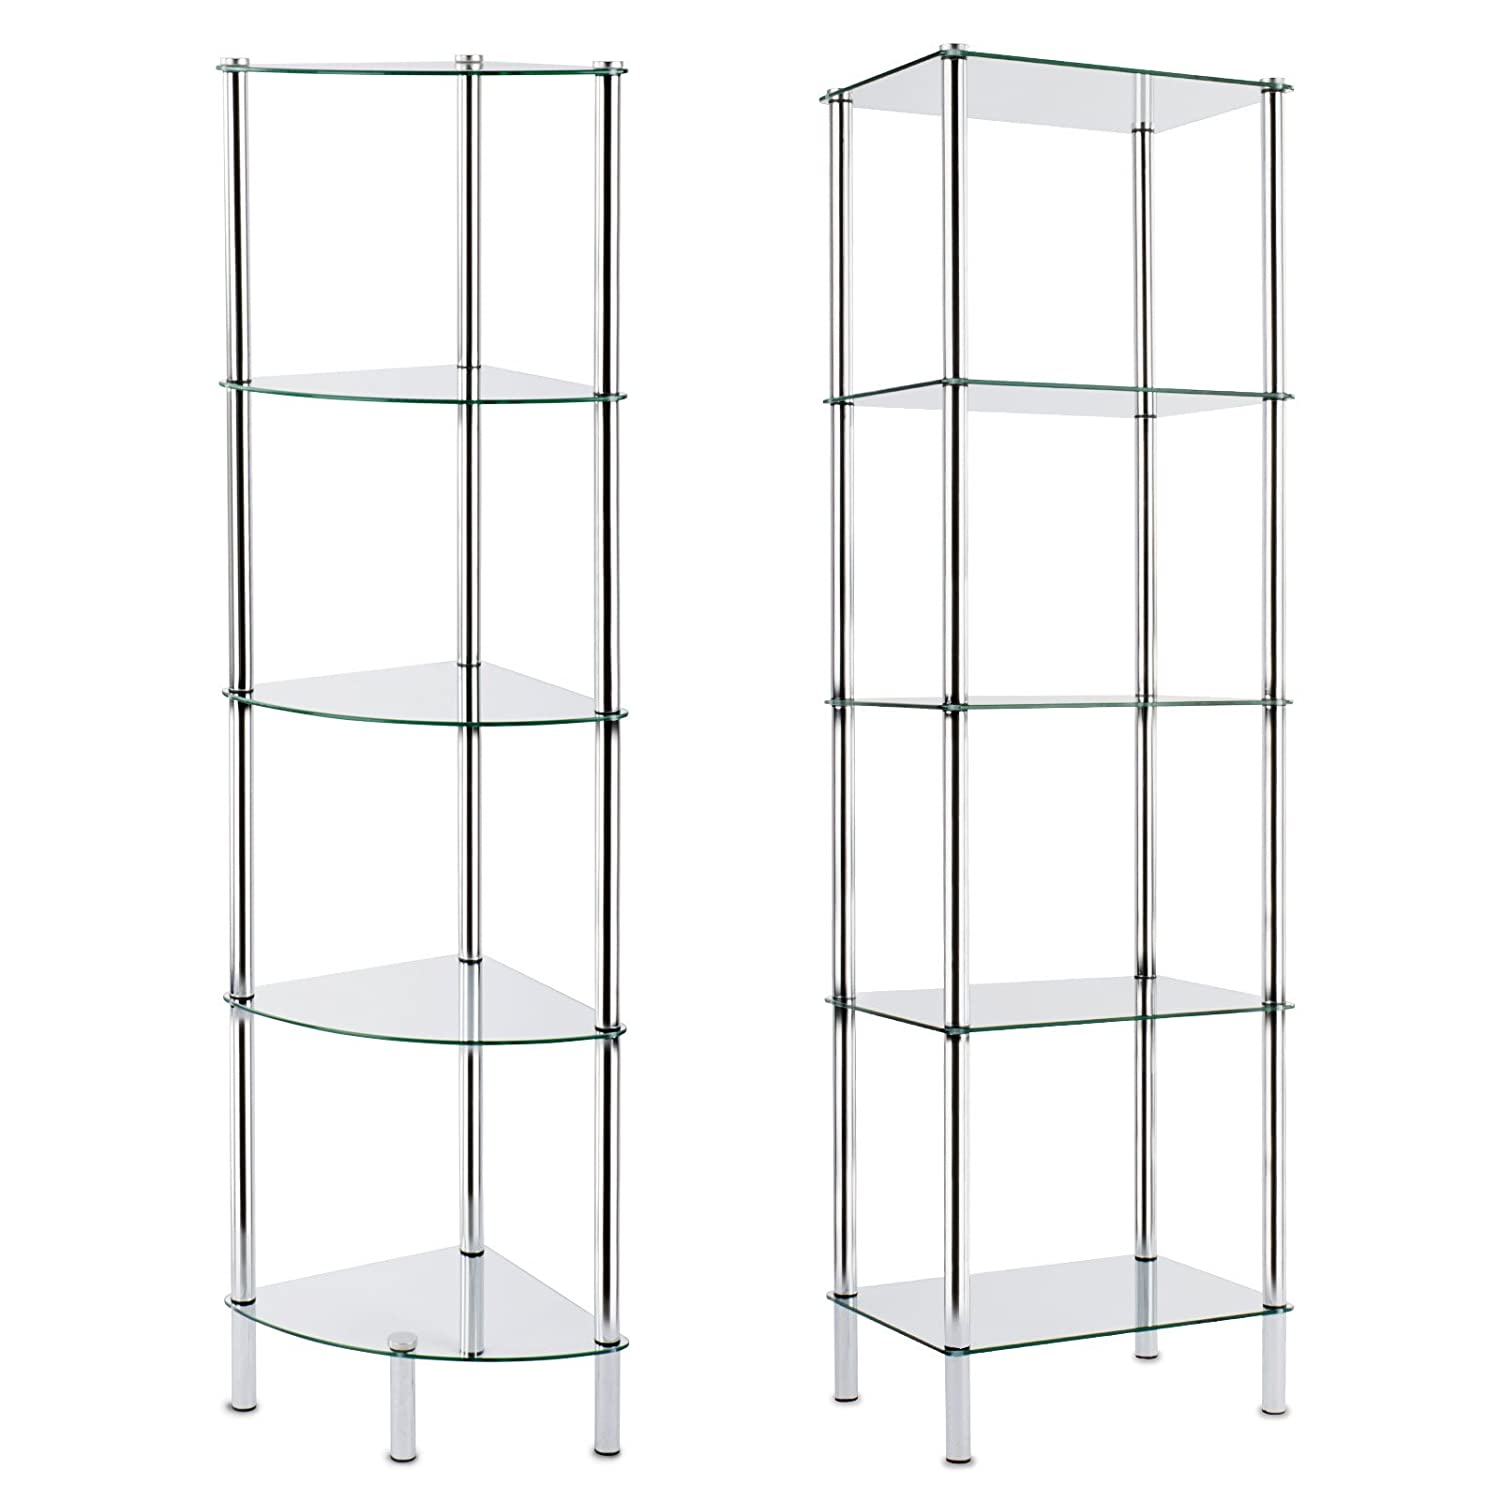 Glass shelving bathroom - Casa Pura Glass Corner Shelving Unit 5 Tier 30x30x134cm 2 Sizes Available For Bathroom Kitchen Home And Office Amazon Co Uk Diy Tools